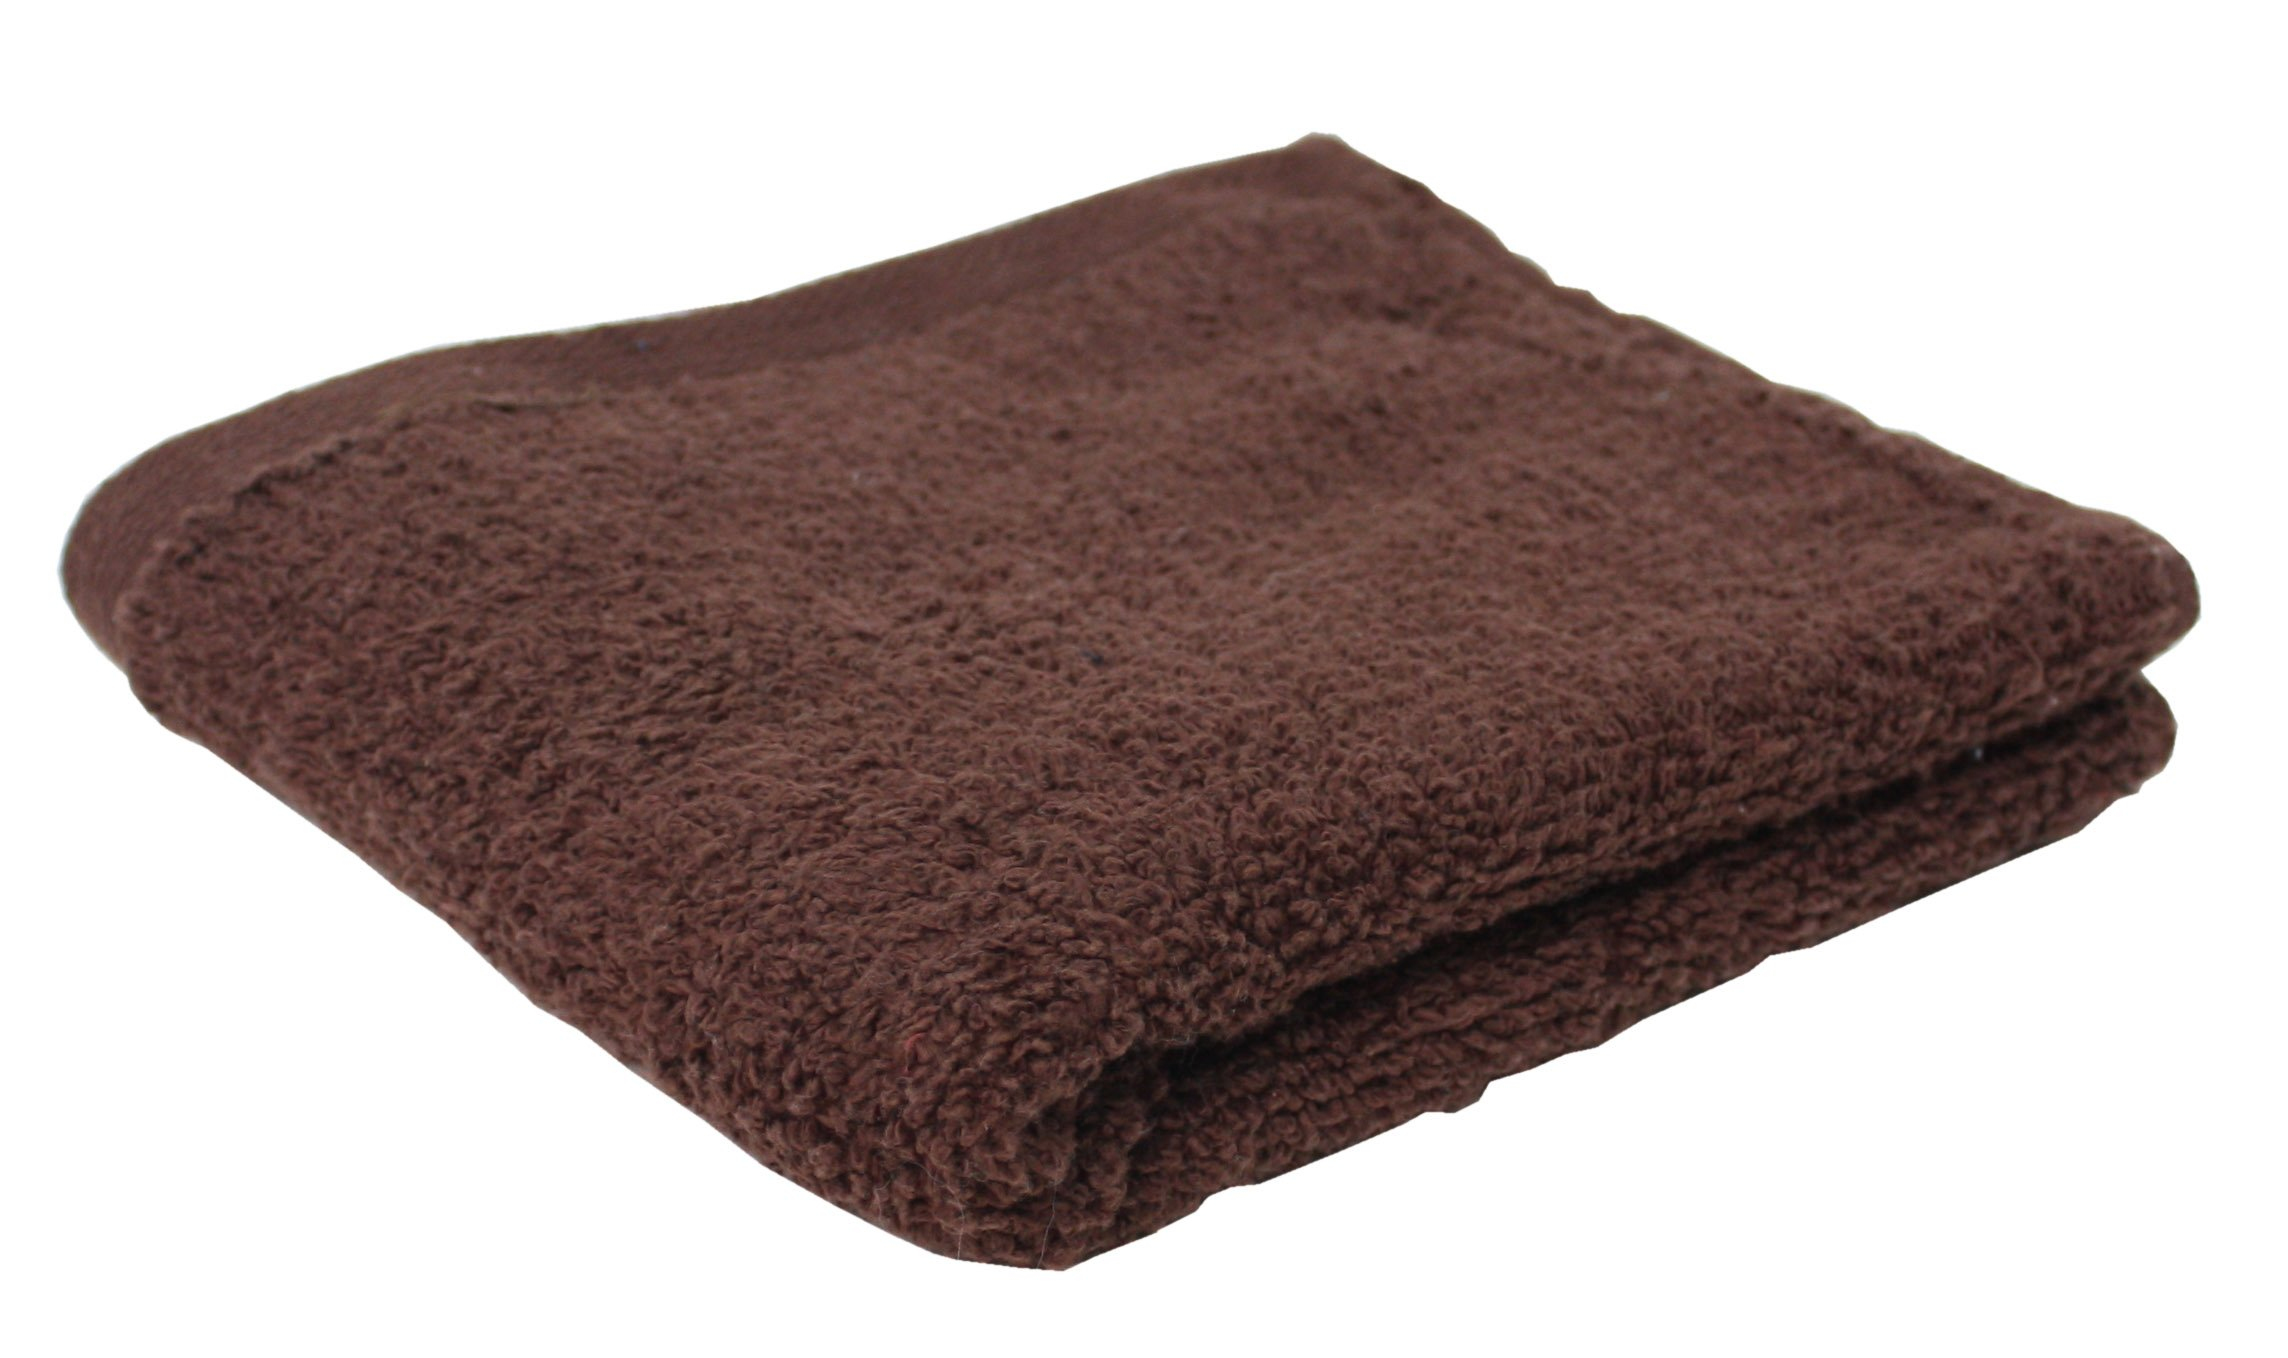 Premium 72-Piece Bulk Pack Cotton Hand Towel Set, 16x27'', Hotel & Spa Quality, Super Soft and Ultra Absorbent for Commercial Business-Coffee Brown